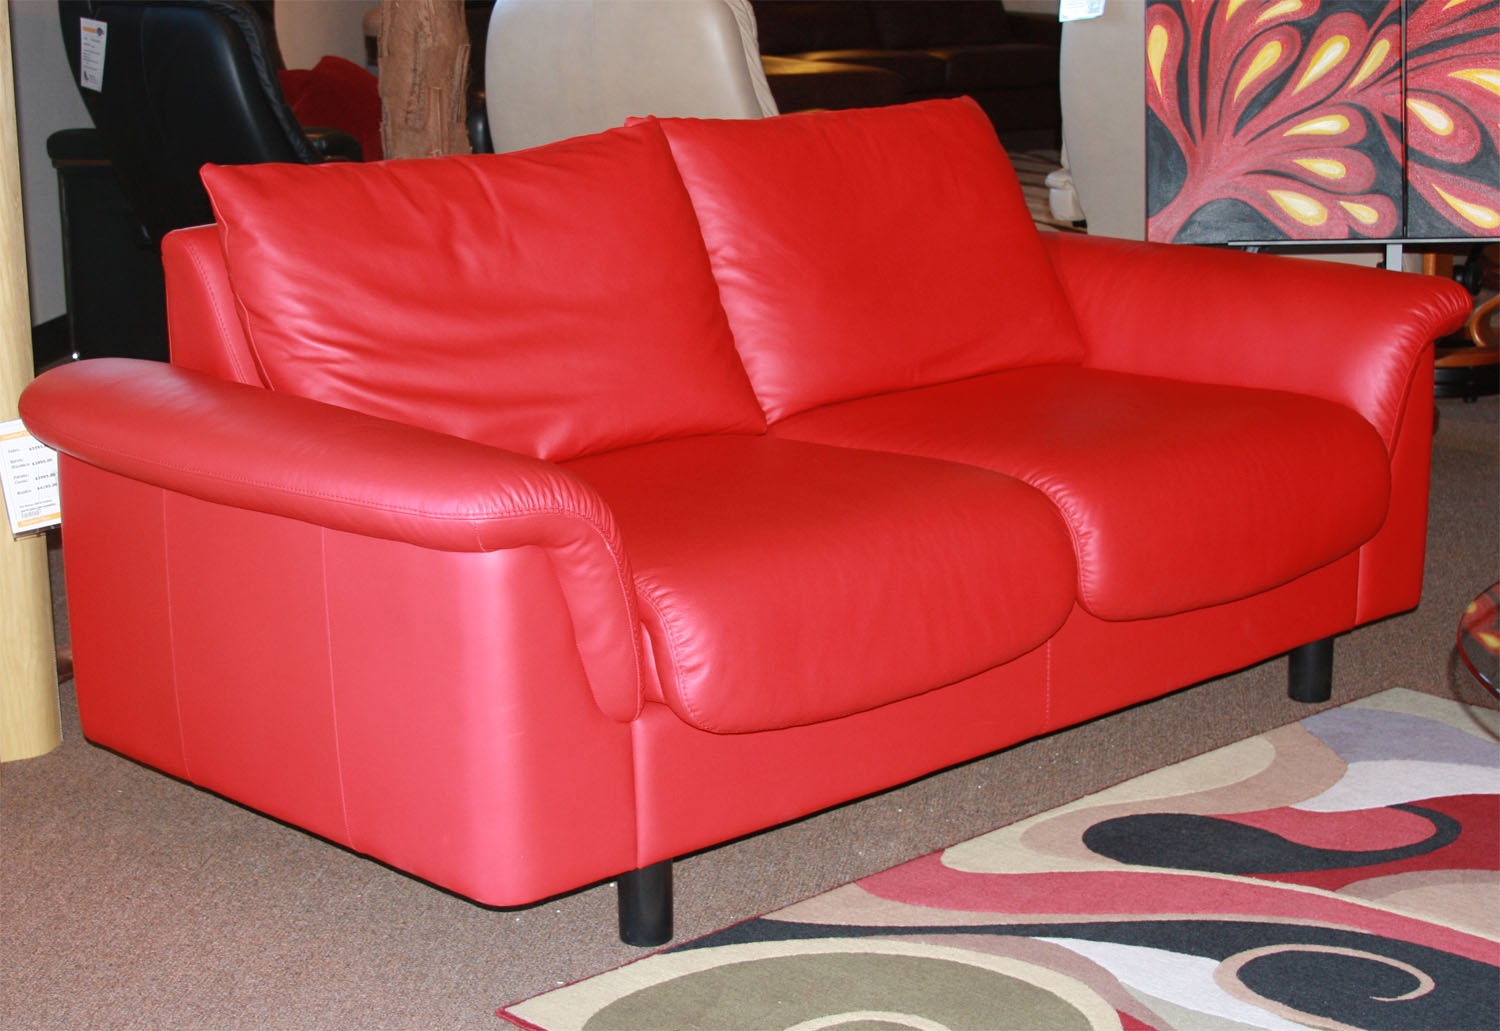 Stressless Paloma Chilli Red 09462 Leather By Ekornes